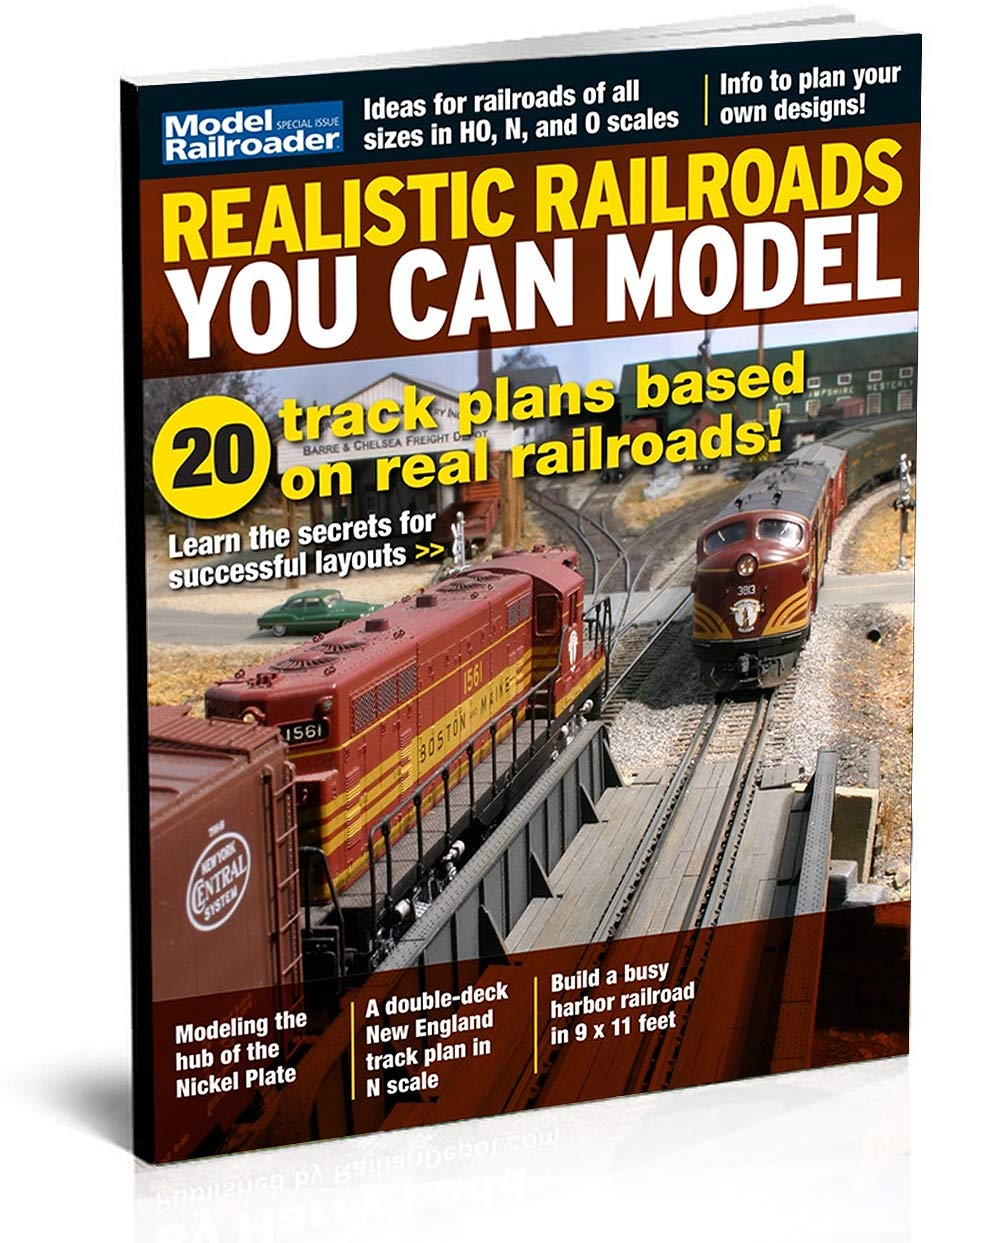 Realistic Railroads You Can Model, 20 Track Plans by Model Railroader Magazine